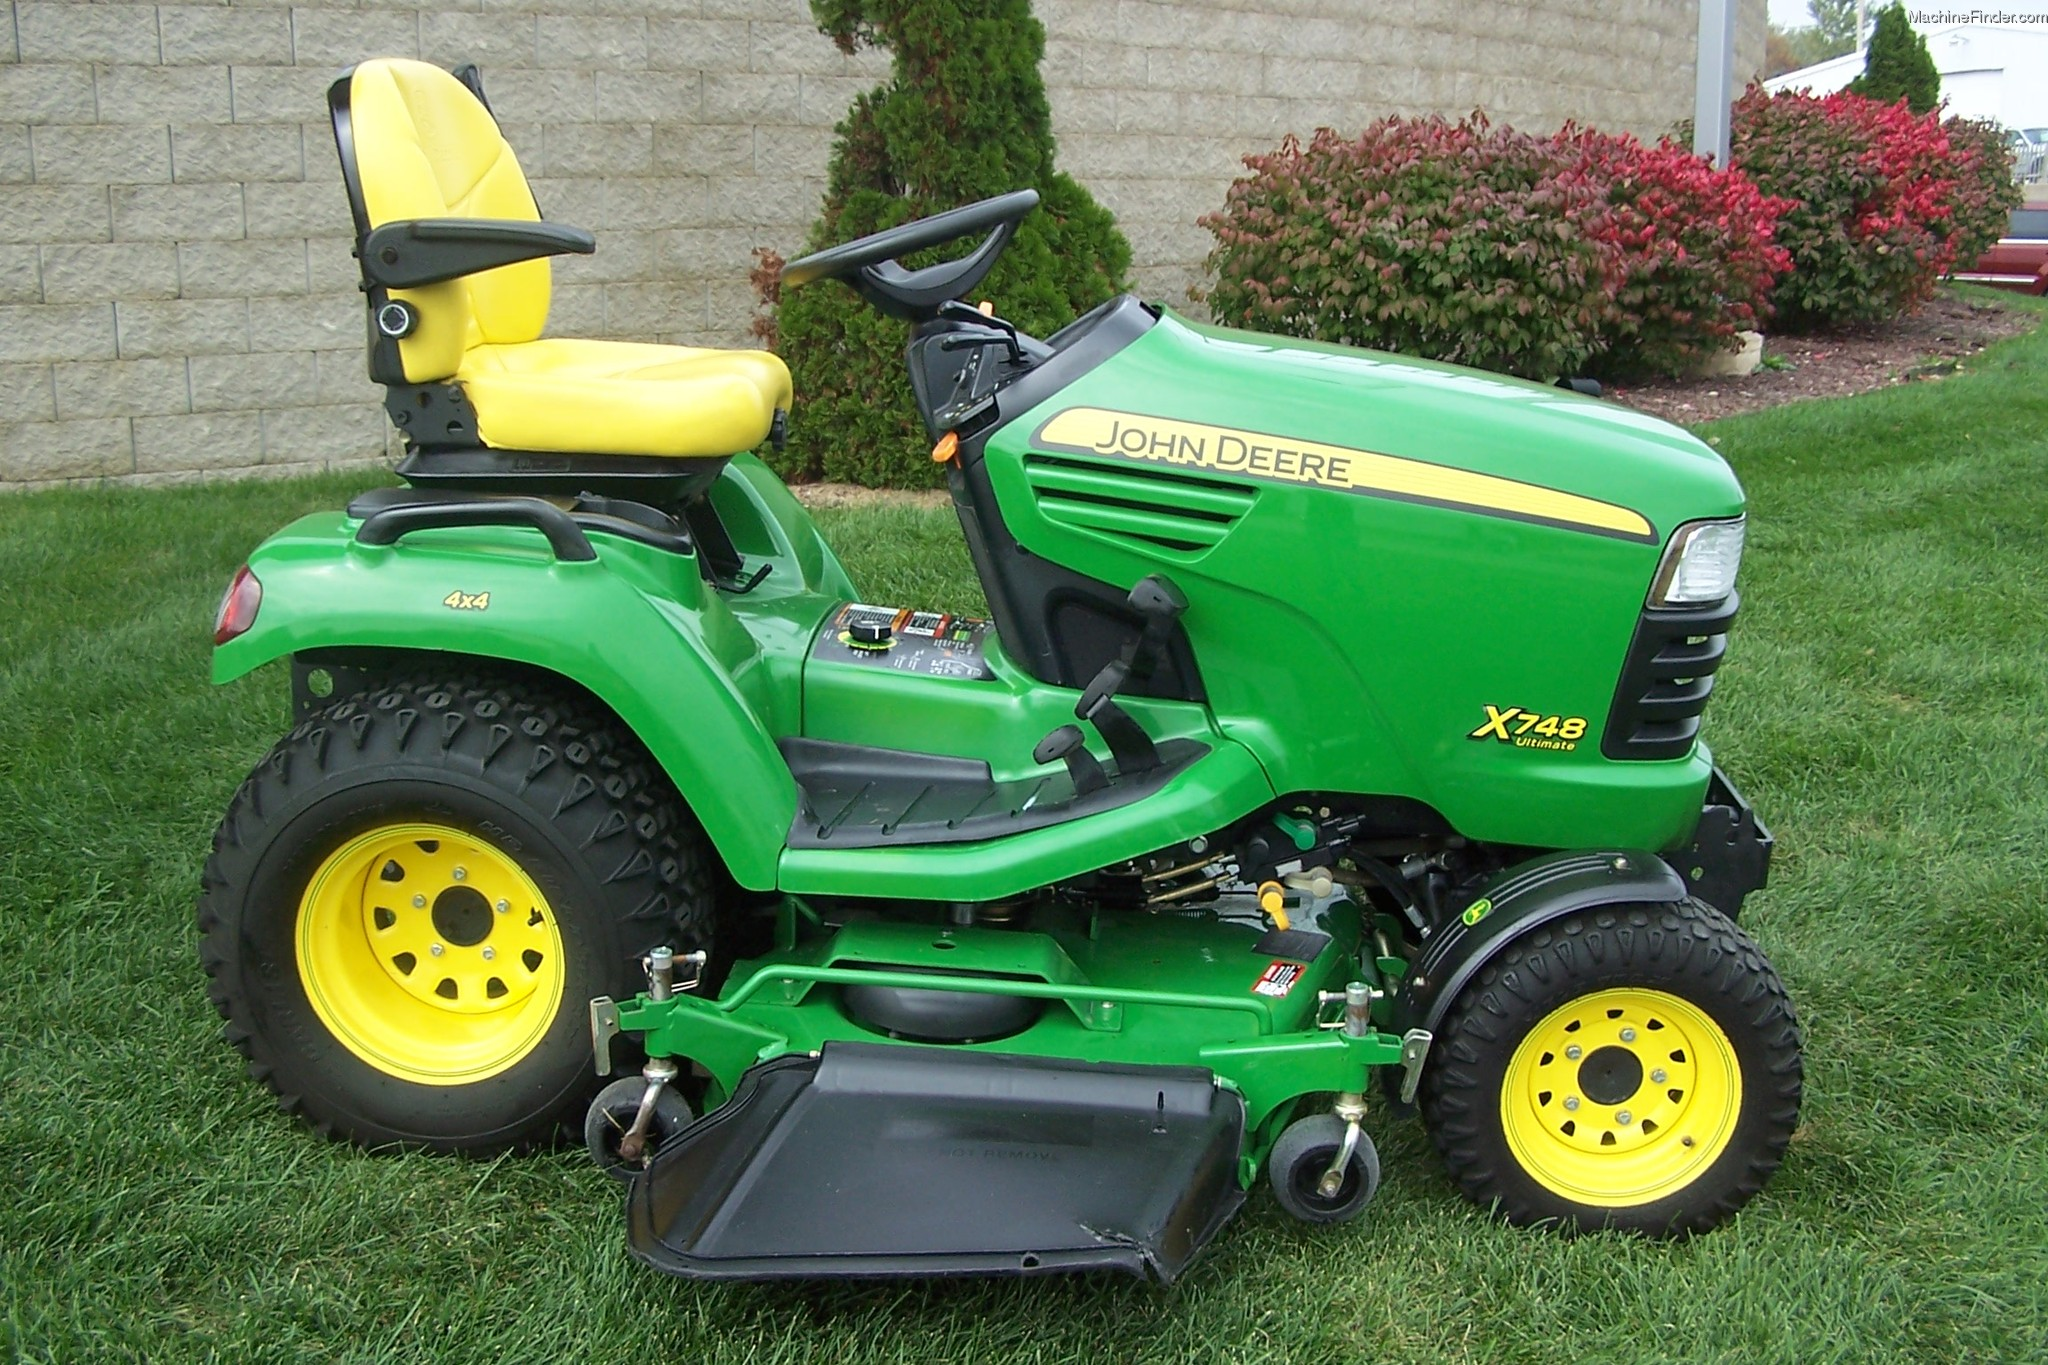 2011 John Deere X748 Lawn & Garden and Commercial Mowing ...